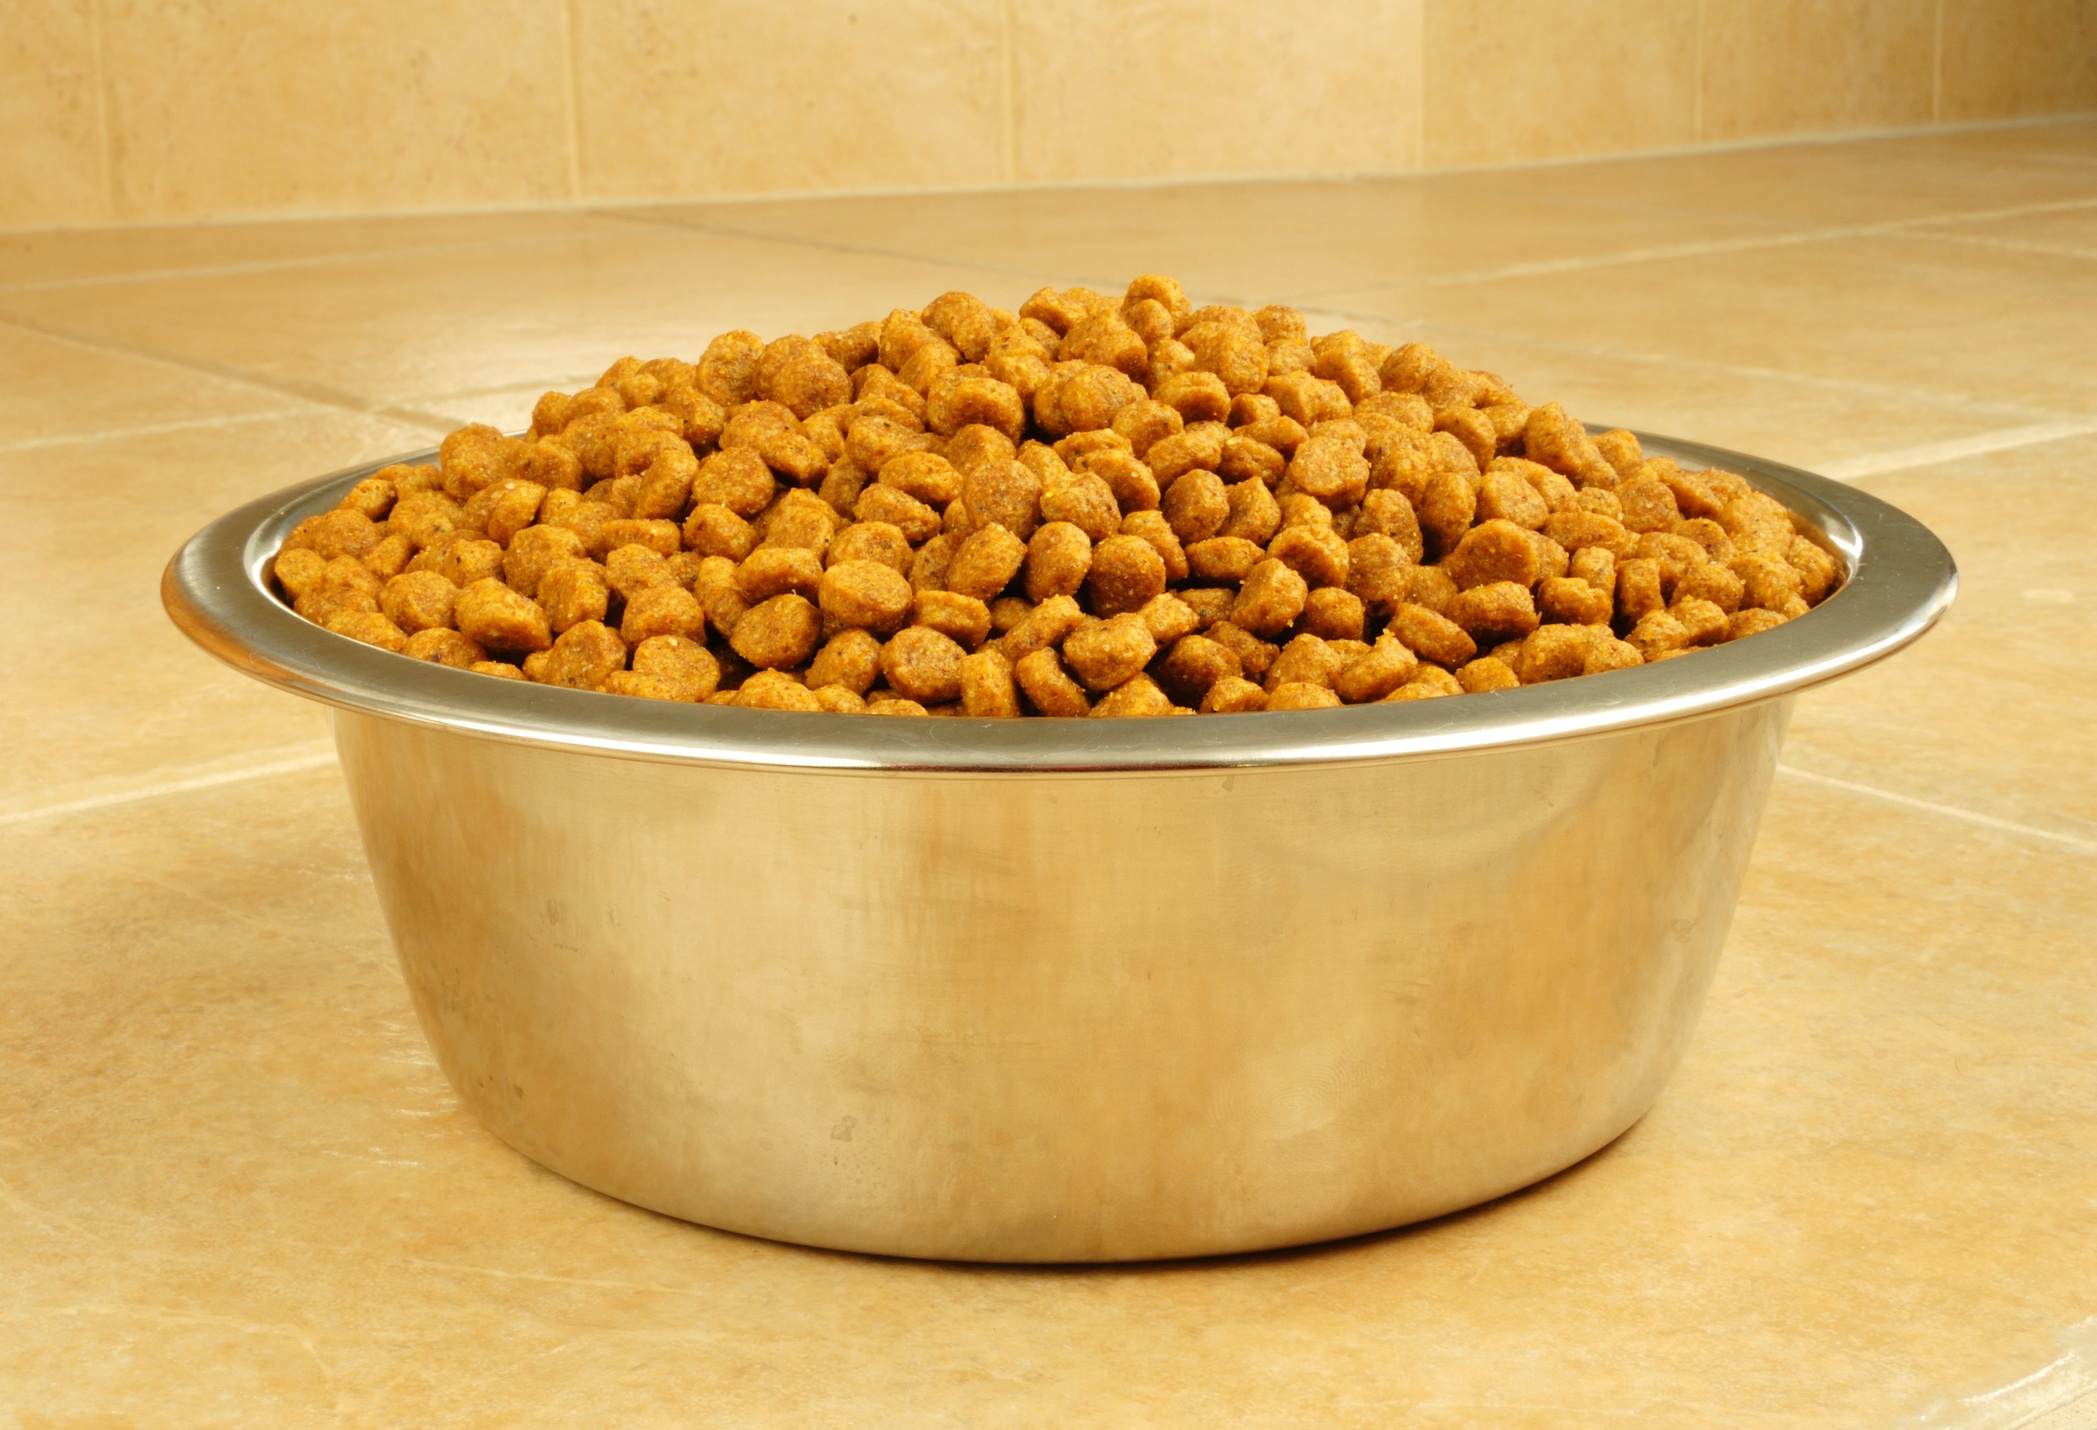 Dry Dog Food in a Stainless Steel Bowl on Ceramic Tile Floor